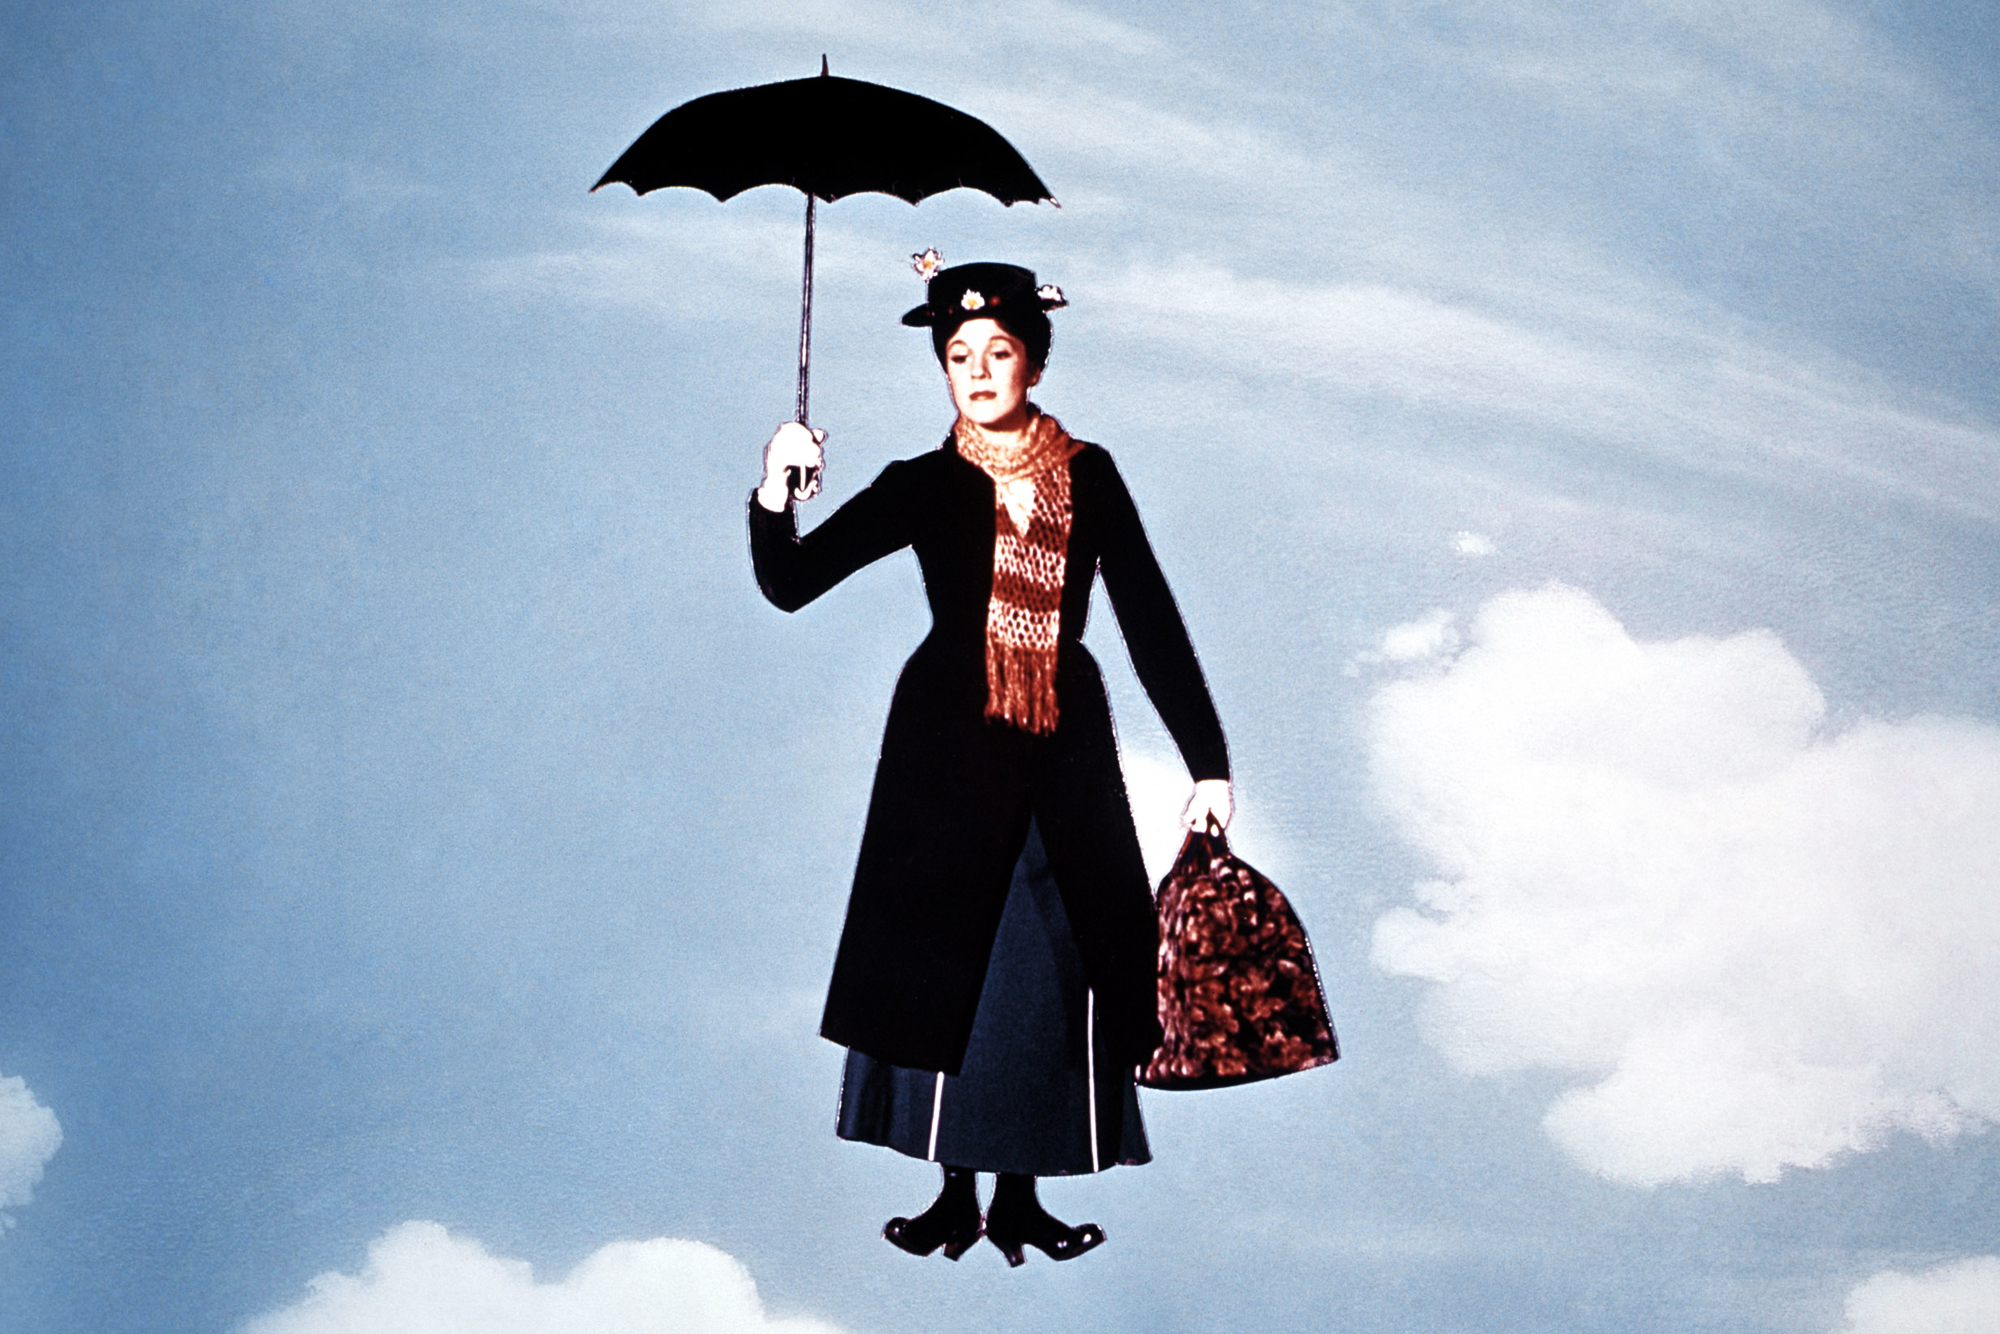 new �mary poppins� movie being developed by disney indiewire